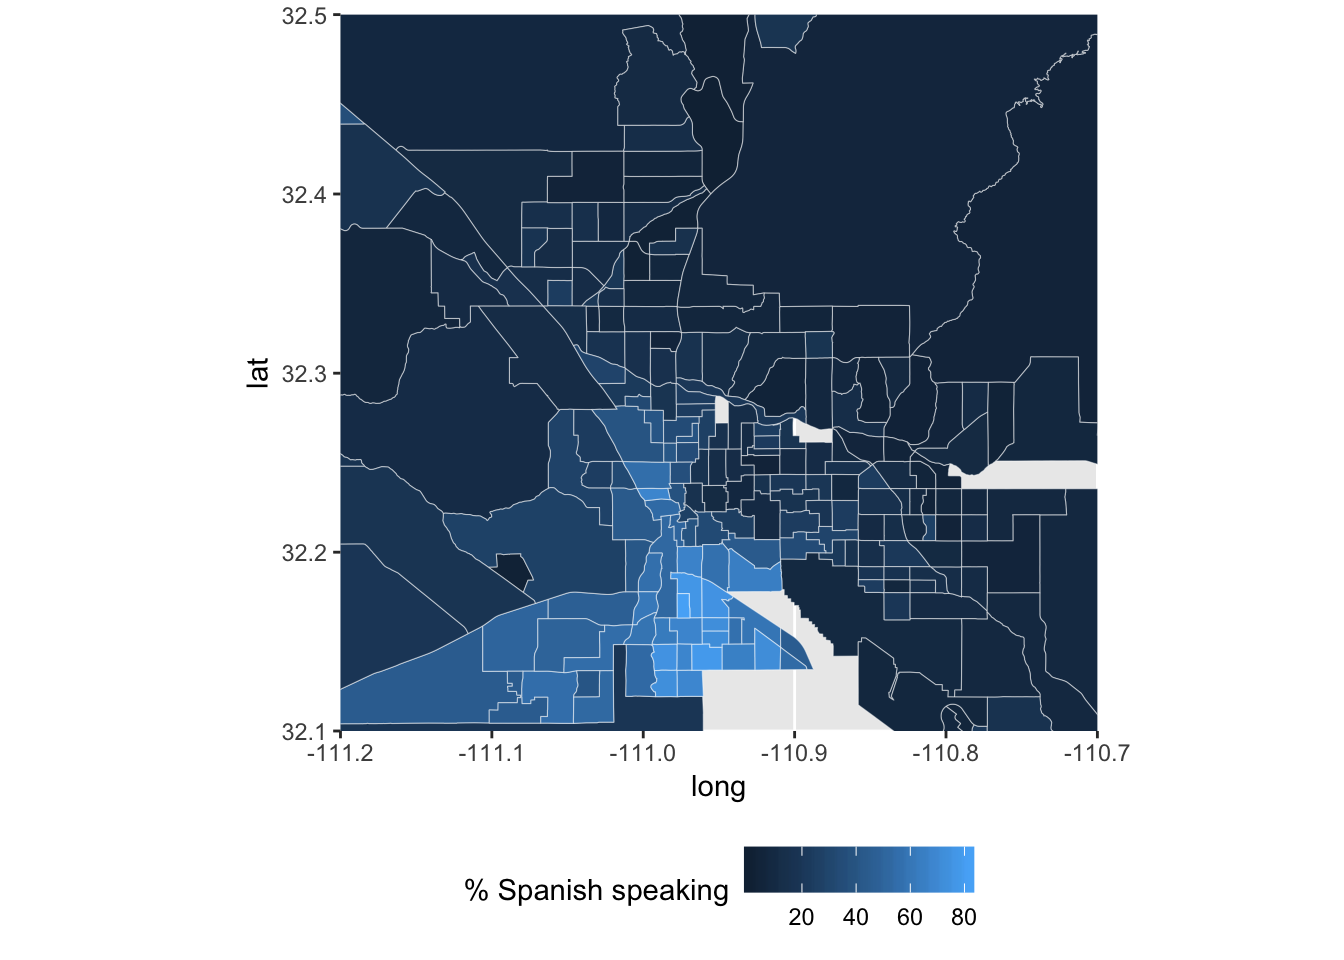 Mapping Us Census Data And Adding Twitter Posts Francojc - Us-census-data-map